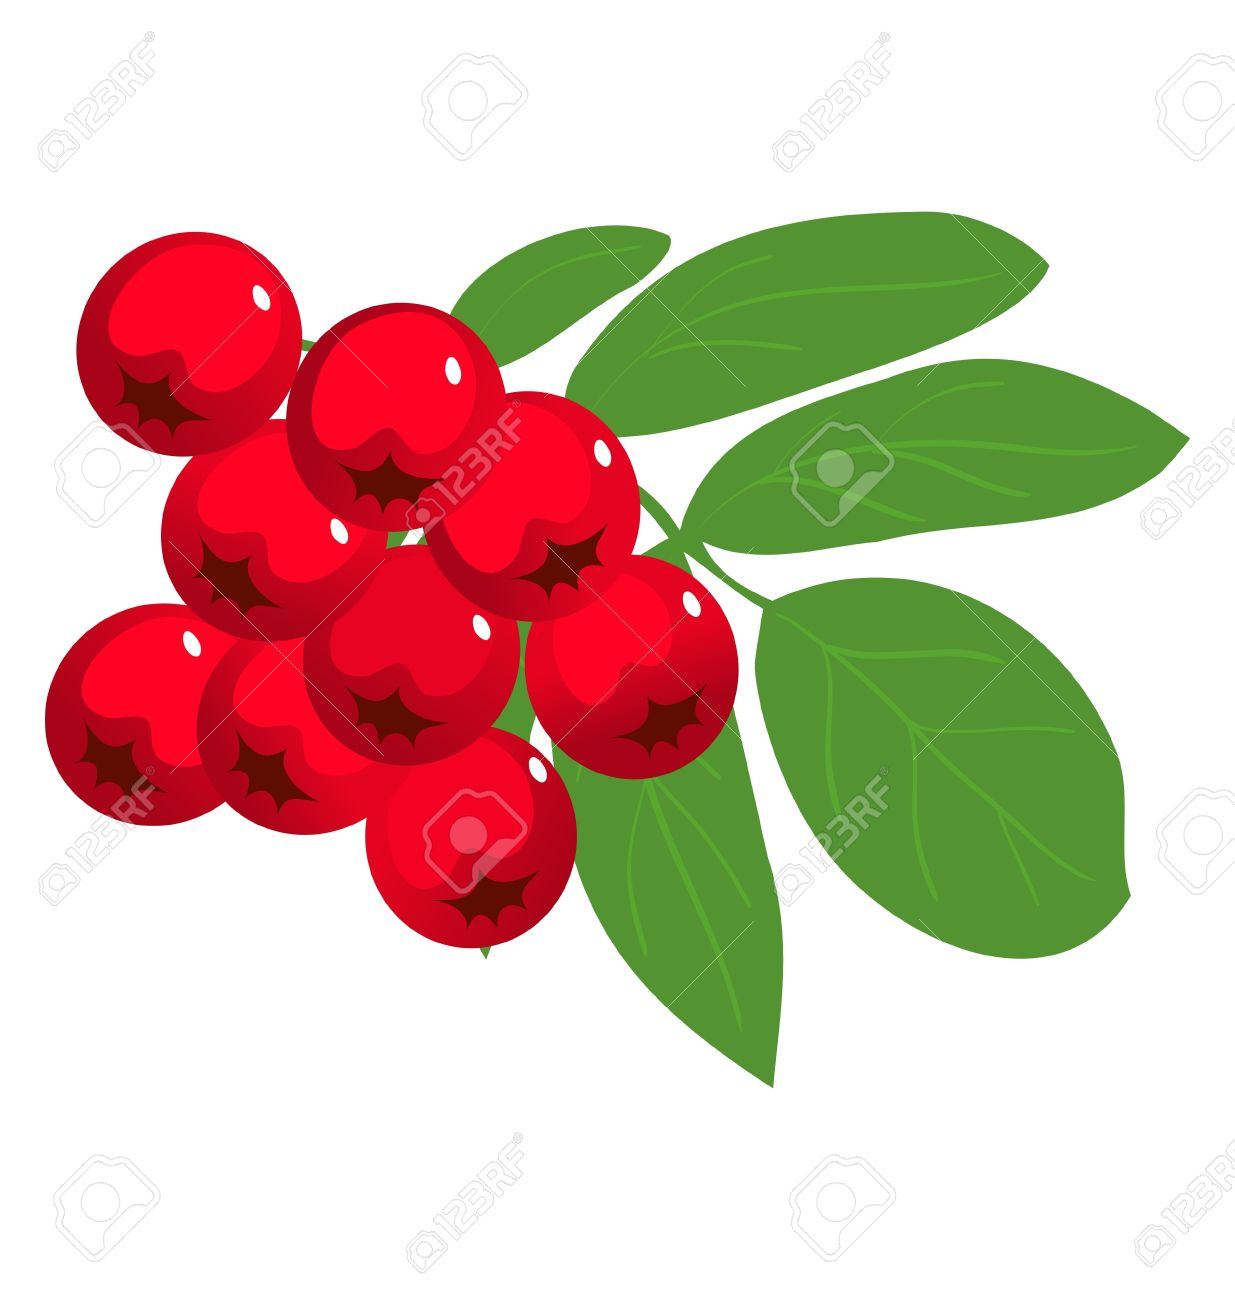 Mountain Ash Or Rowan Berry The White Royalty Free Cliparts.